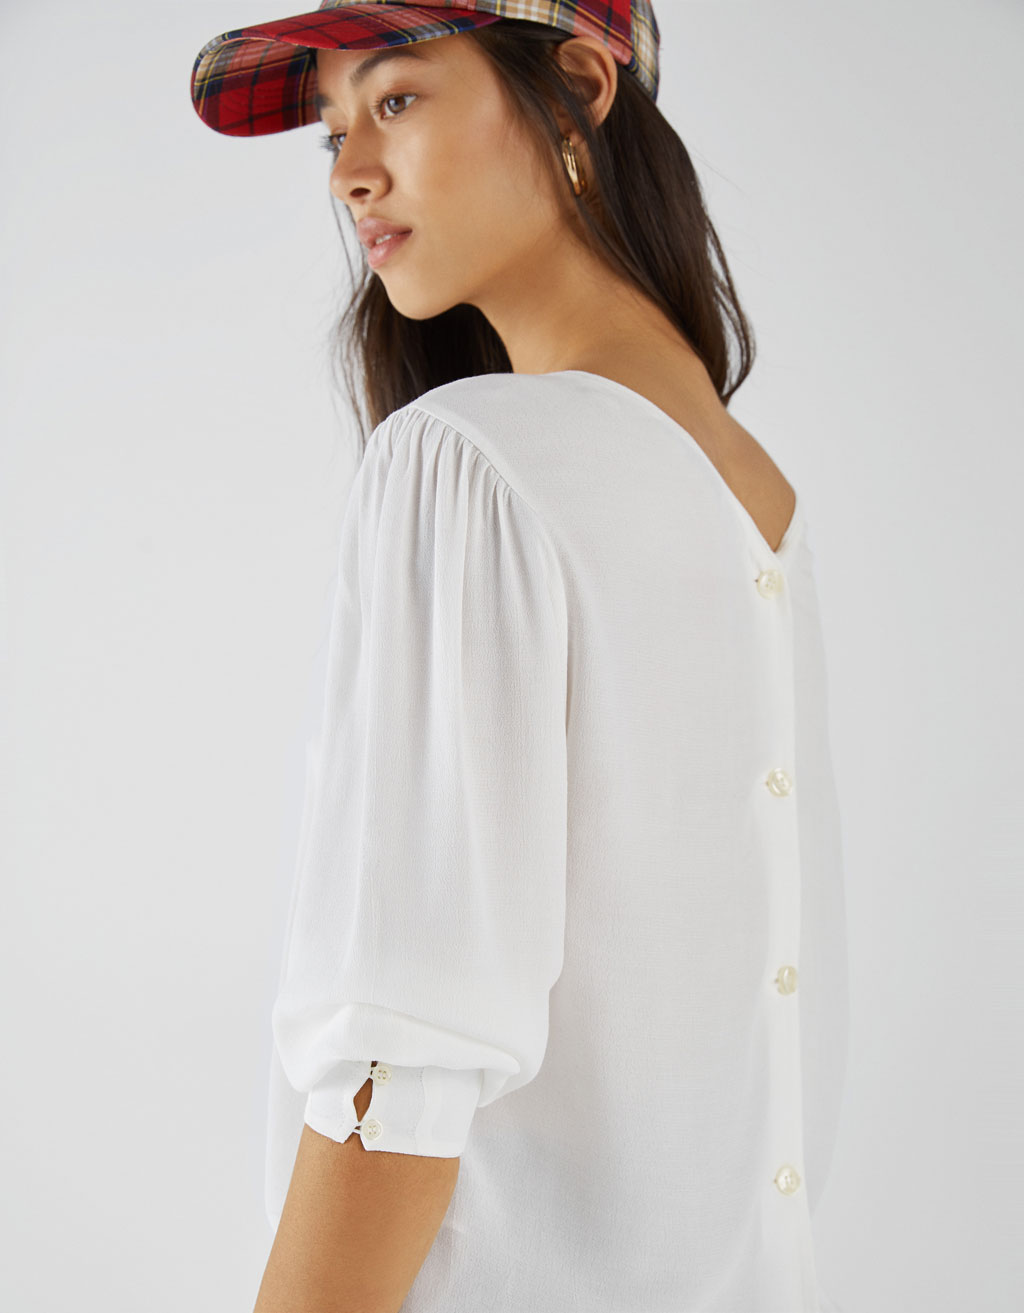 Blouse with buttons on the back